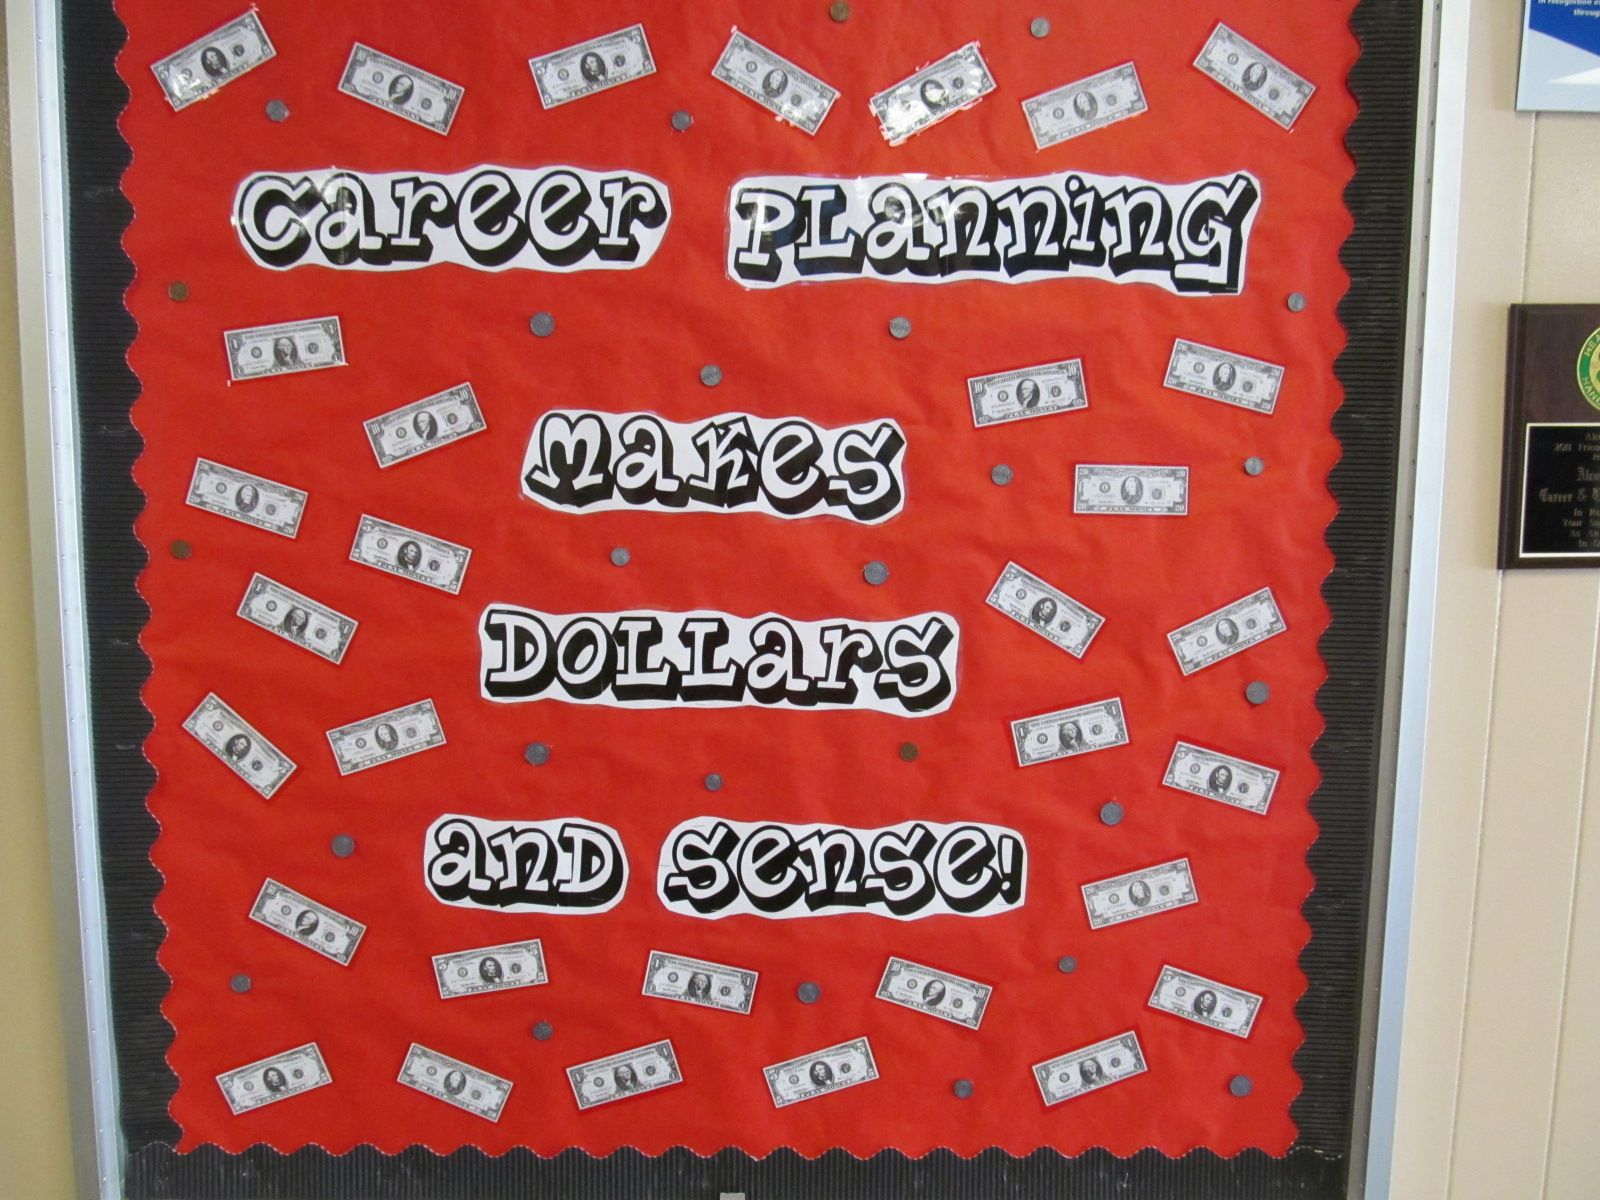 Career Counseling Bulletin Board